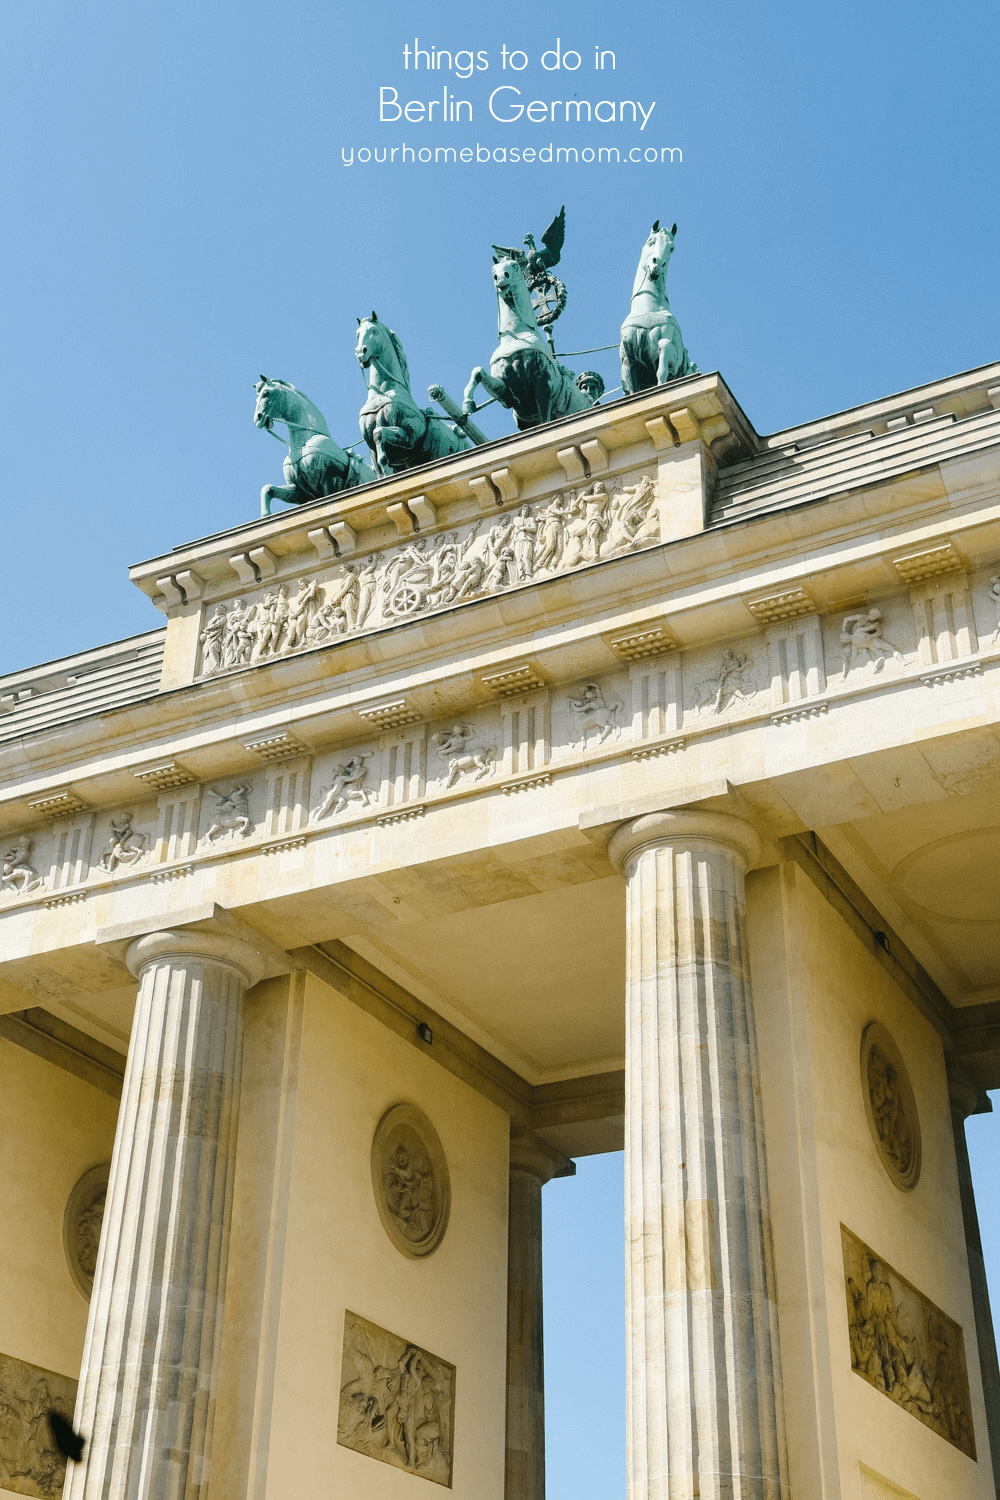 list of things to do in Berlin